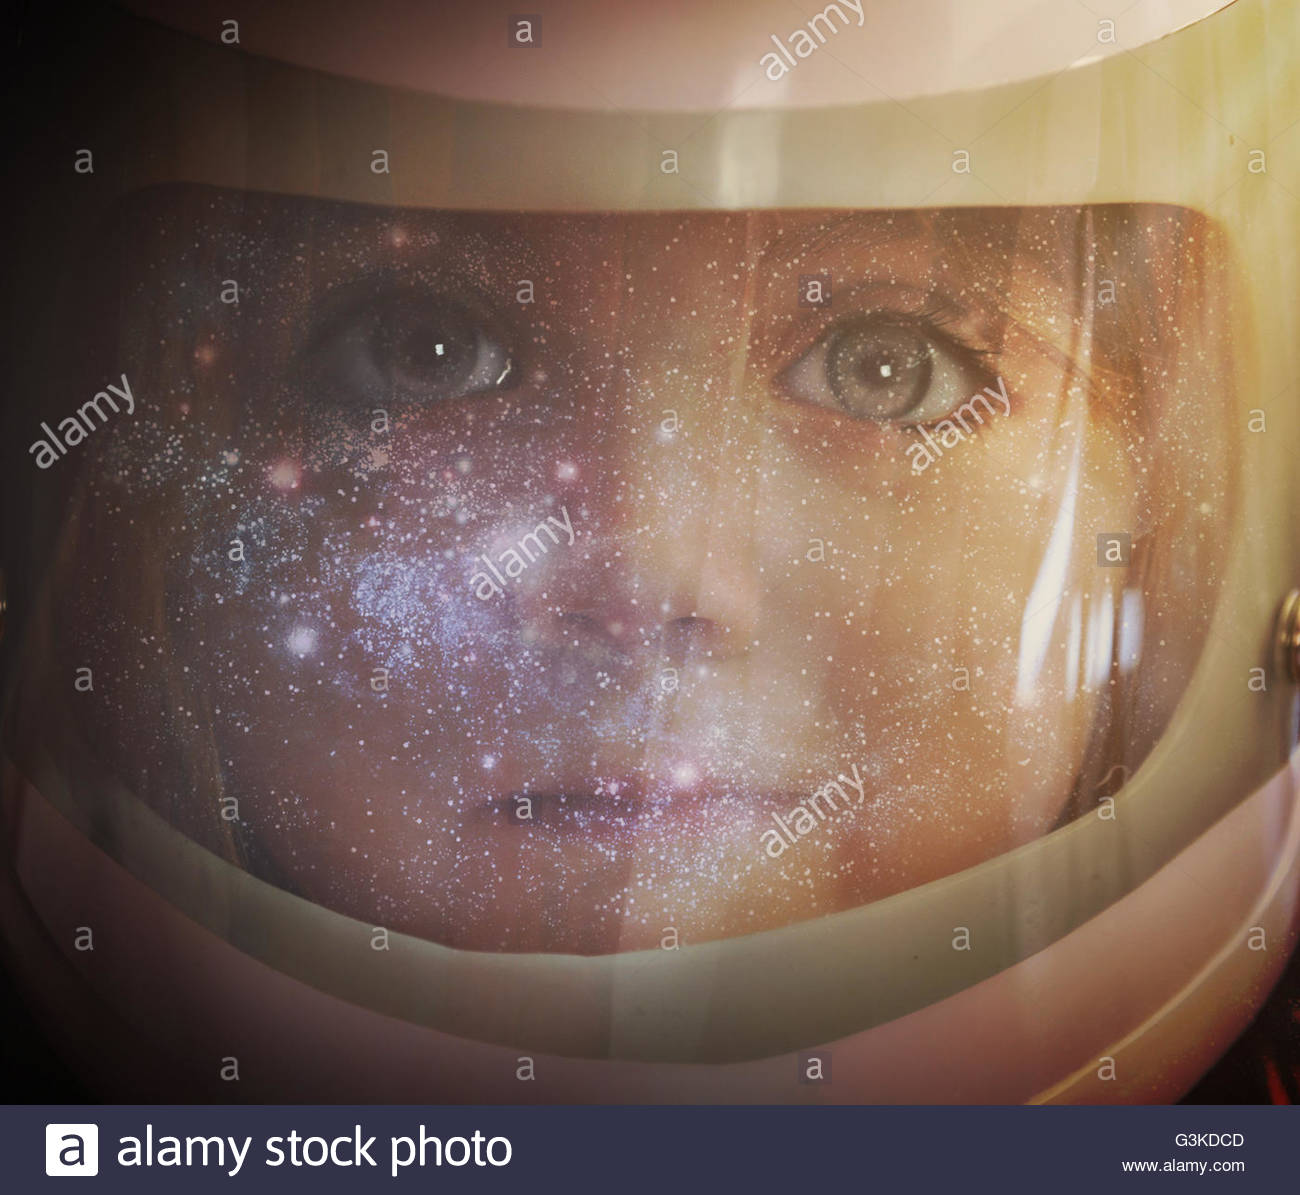 A young girl is wearing an astronaut helmet and looking into space with stars for an education, science or imagination - Stock Image